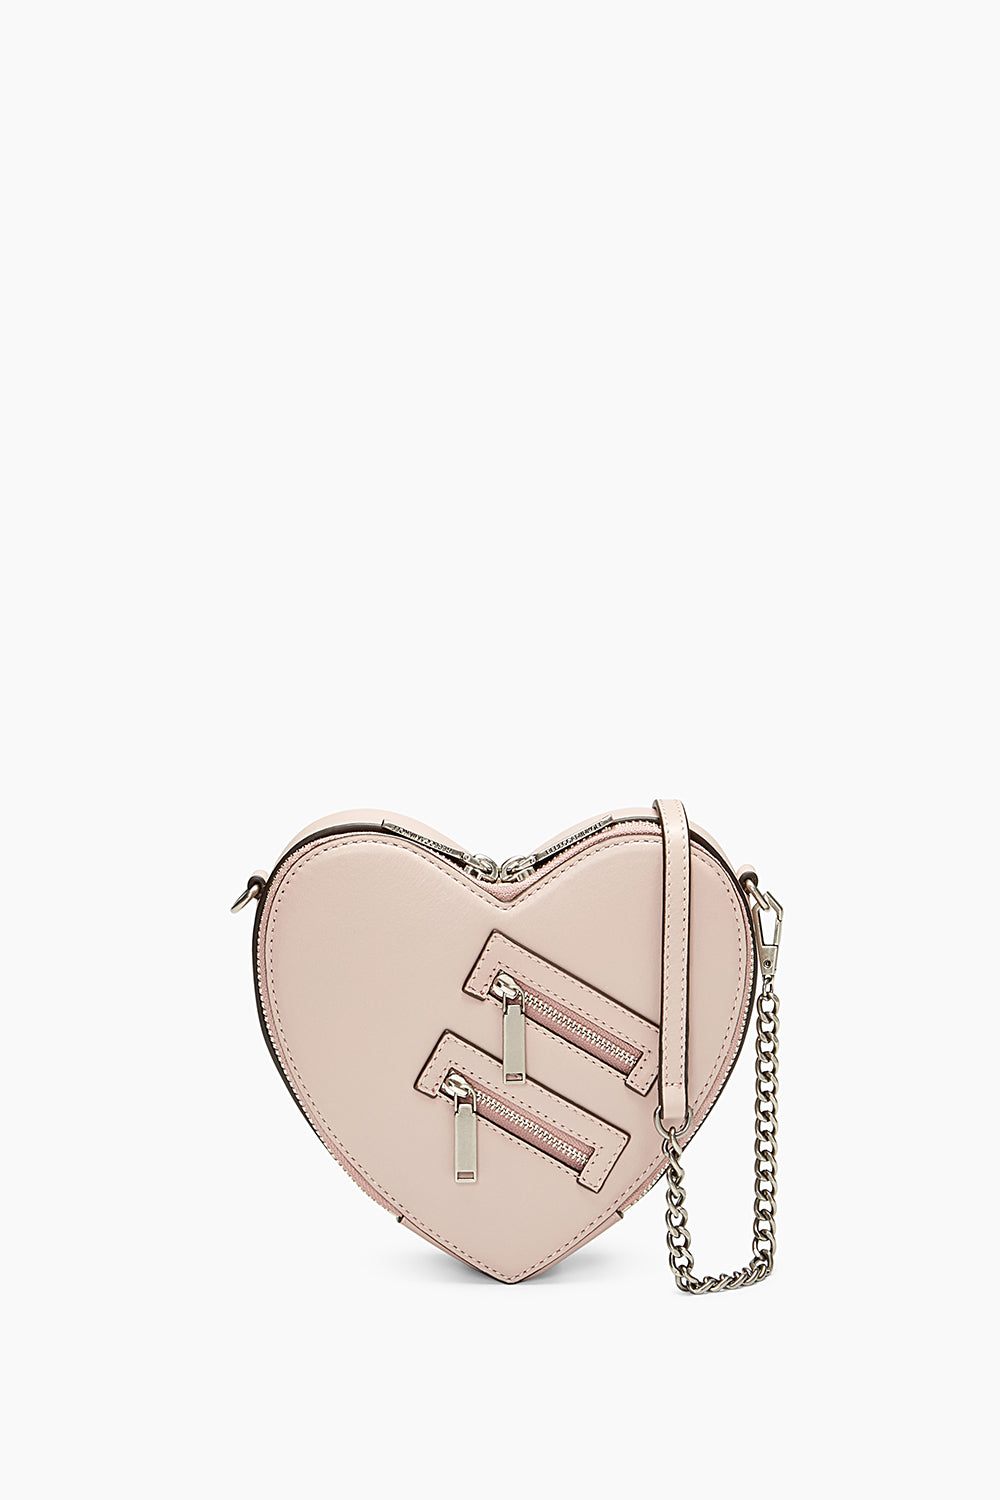 Rebecca Minkoff Jamie Heart Crossbody (Vintage Pink) Cross Body Handbags qJsSJ